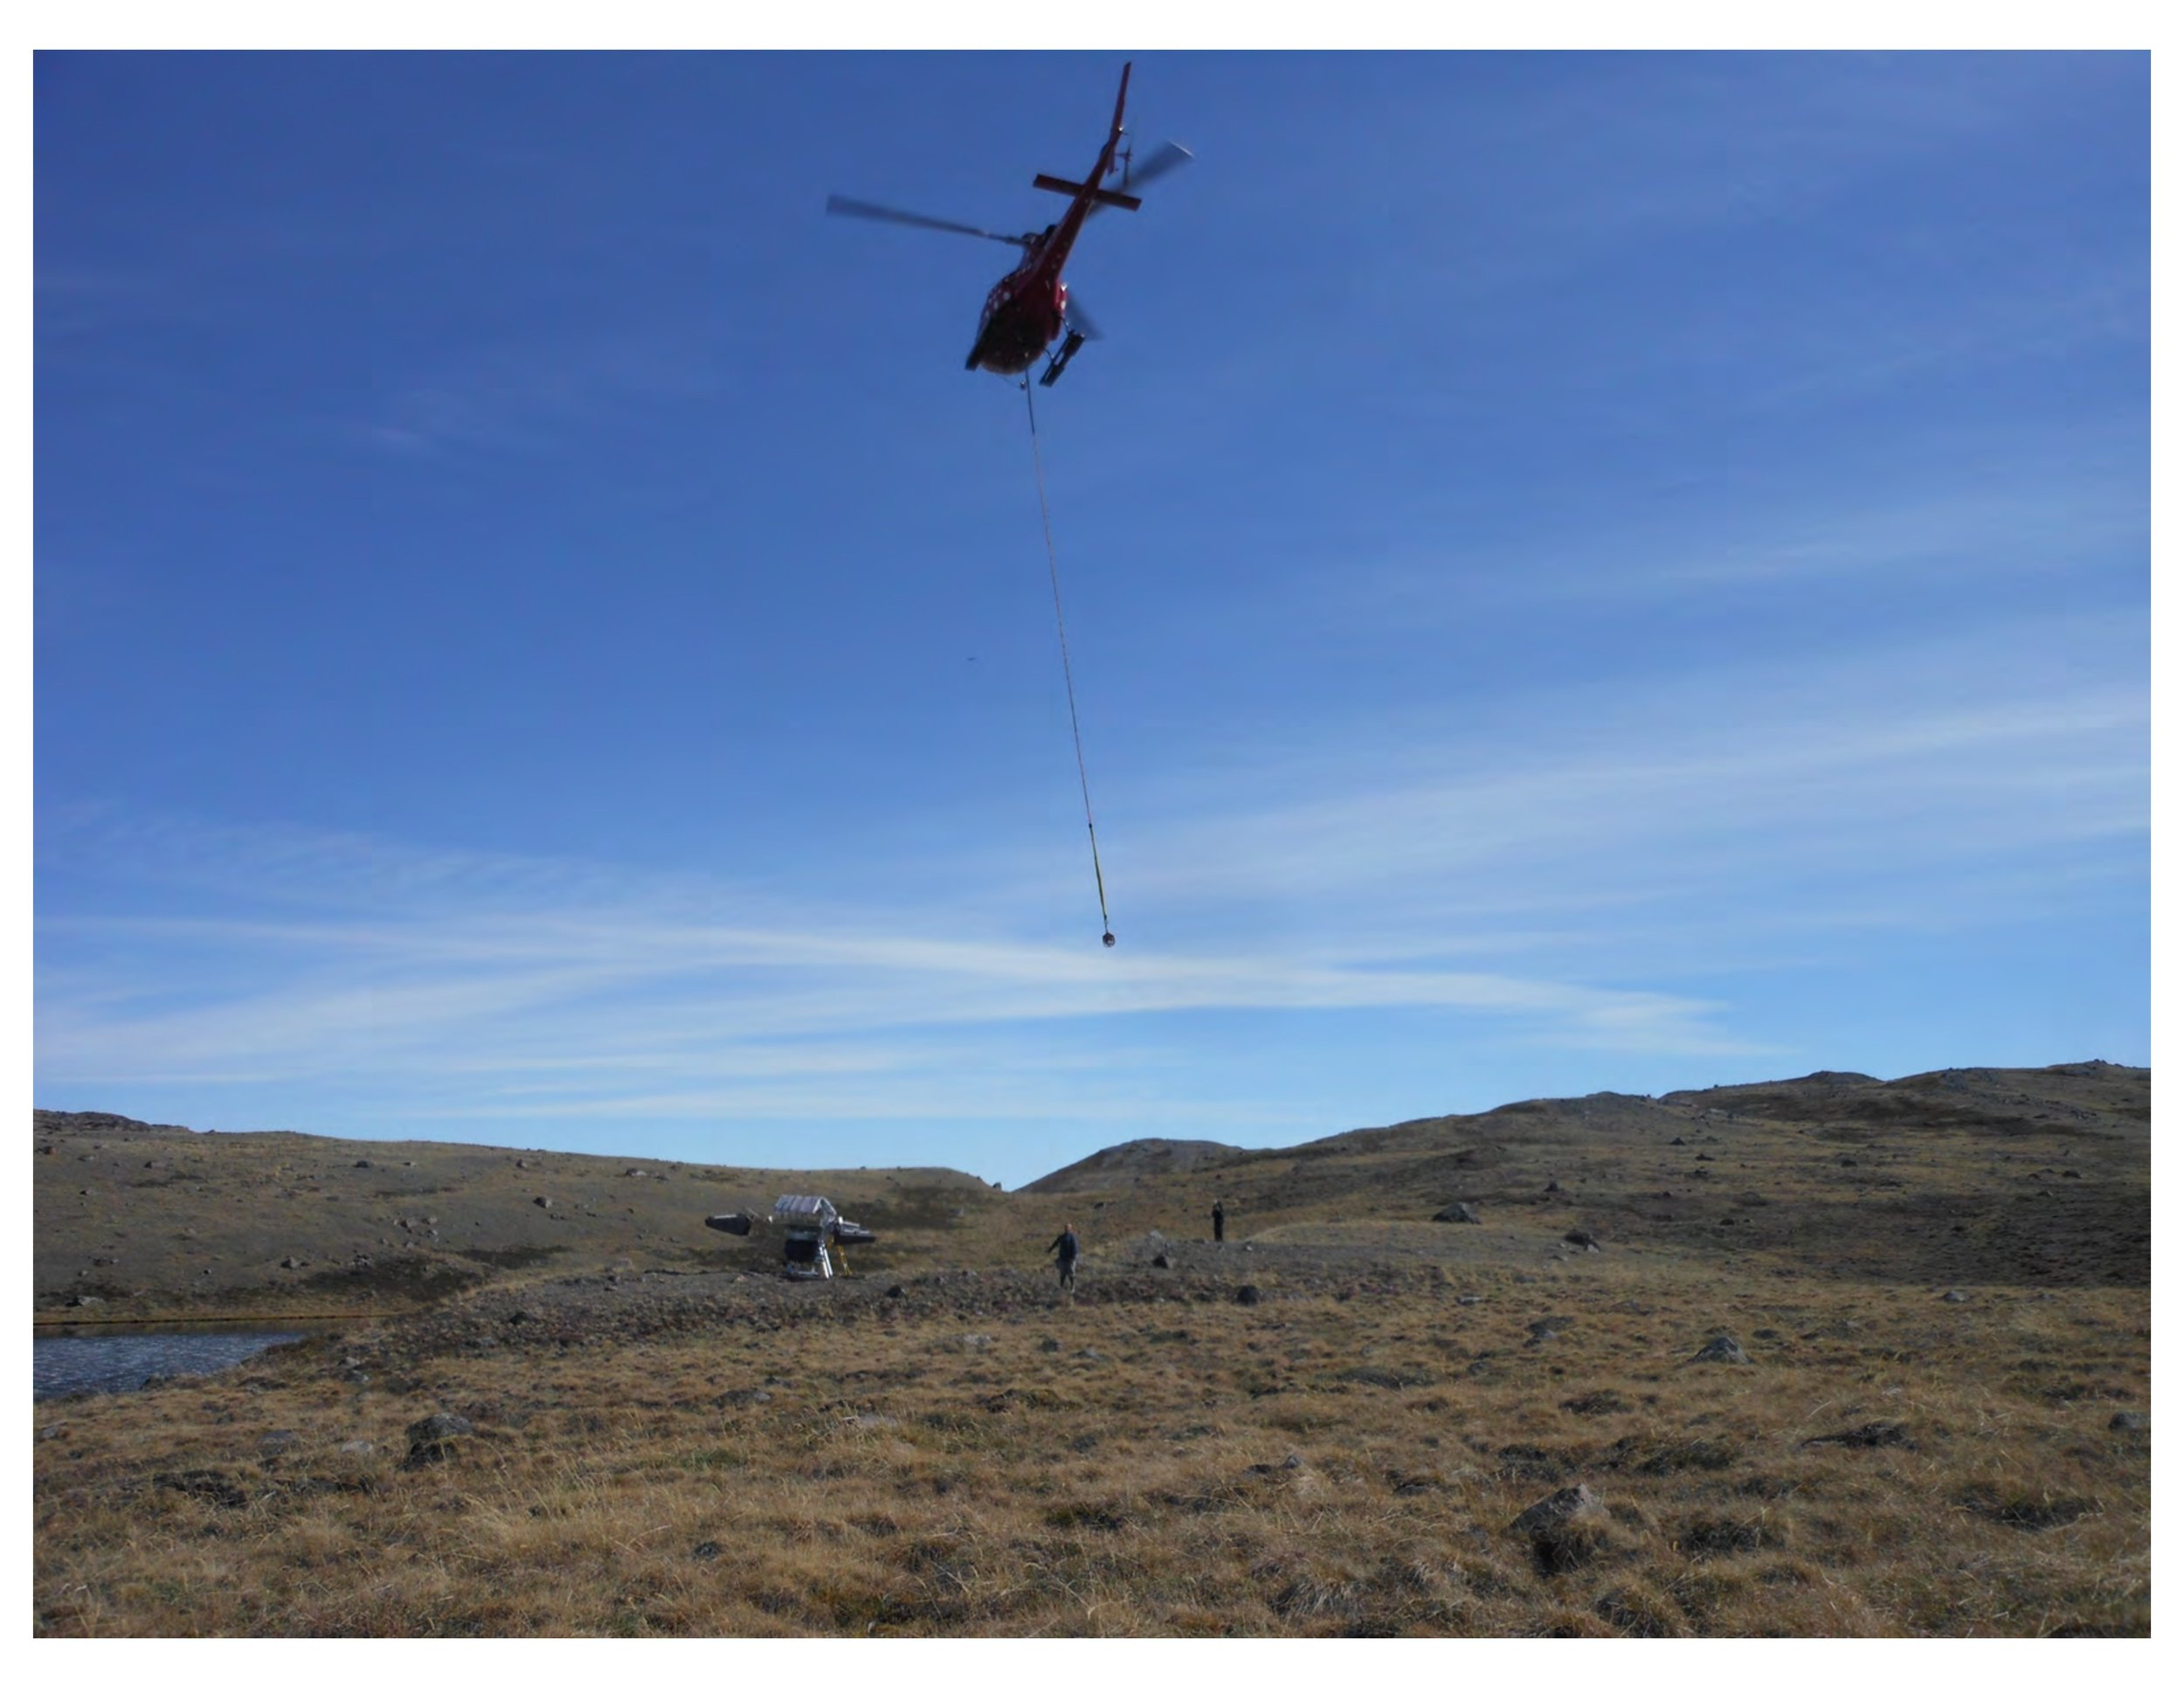 A helicopter lifts the SolarBee so researchers can examine the instrument.